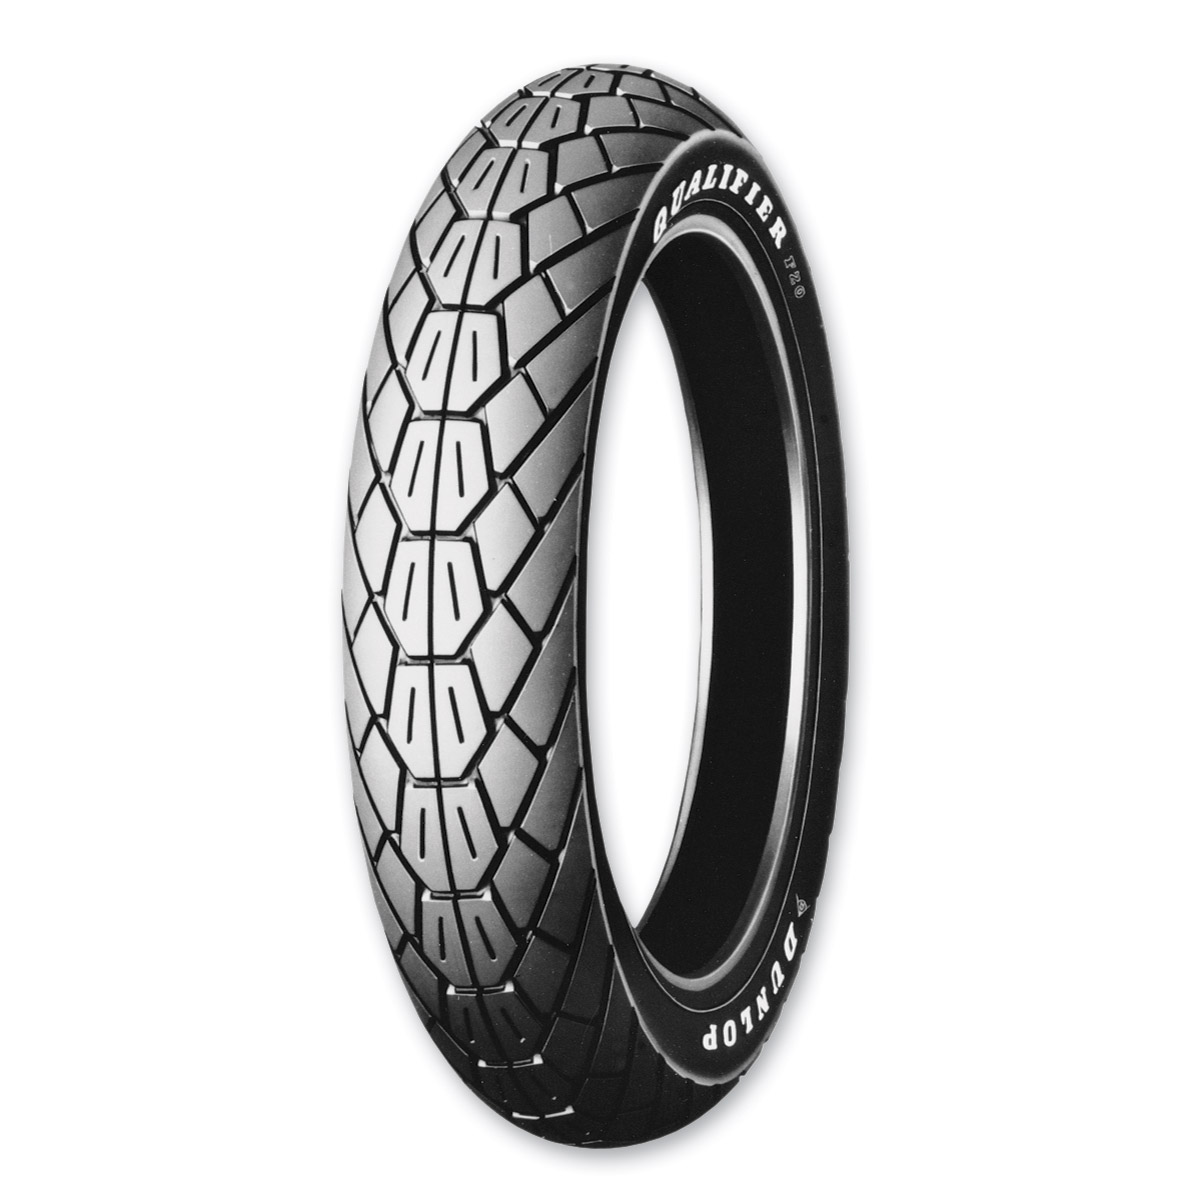 Dunlop f20 qualifier 110 90 18 front tire zz25125 jp for Dunlop white letter motorcycle tires